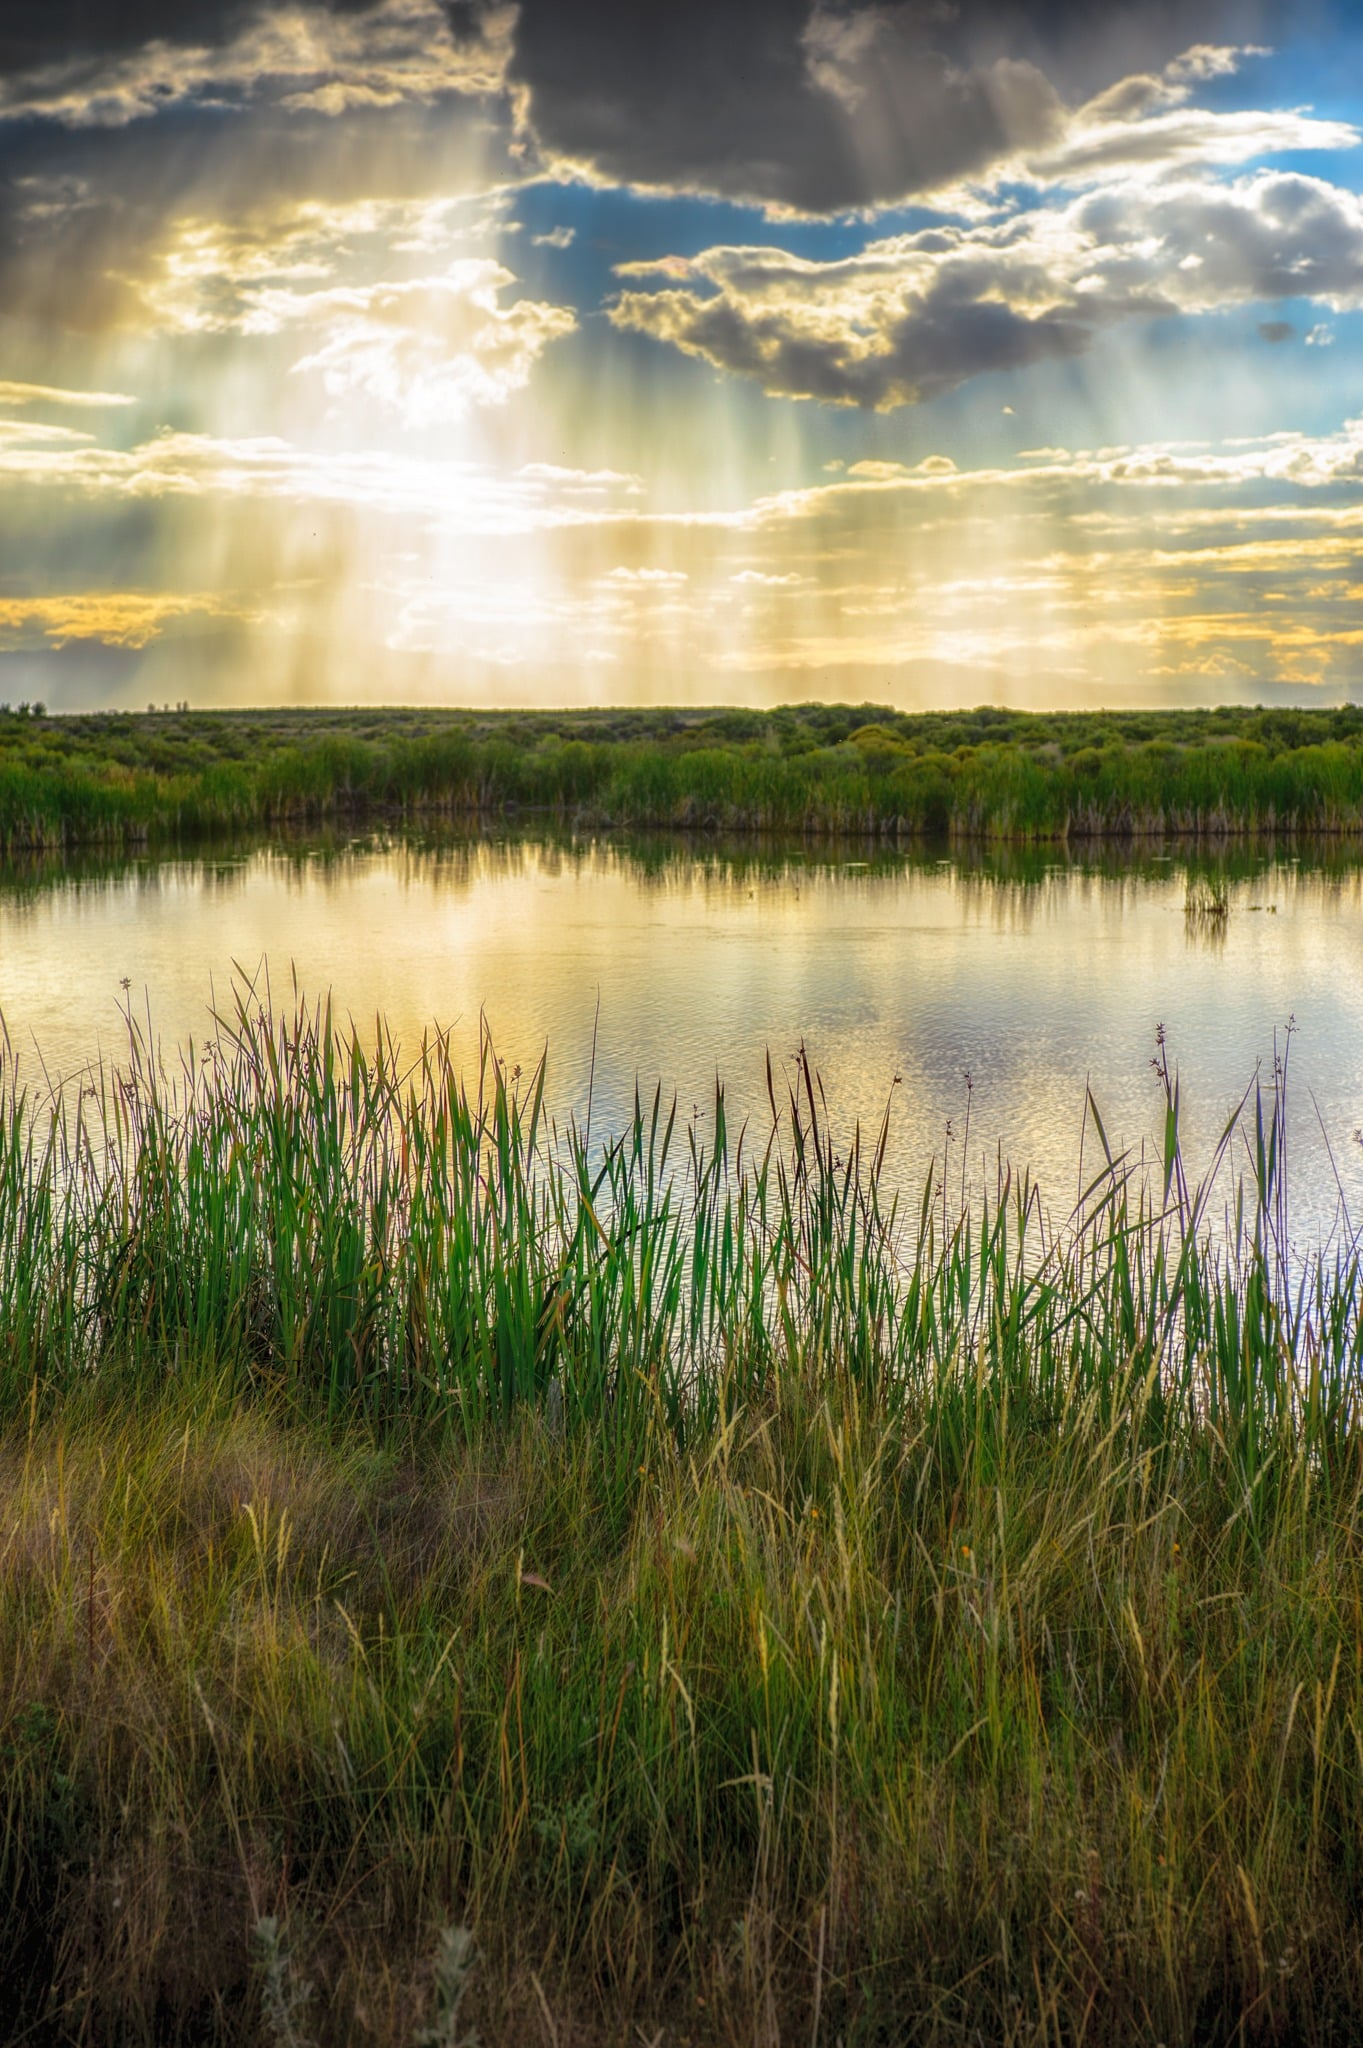 Crepuscular rays illuminate the many ponds located in the Blanca Wildlife Habitat Area in the San Luis Valley near Alamosa, Colorado.